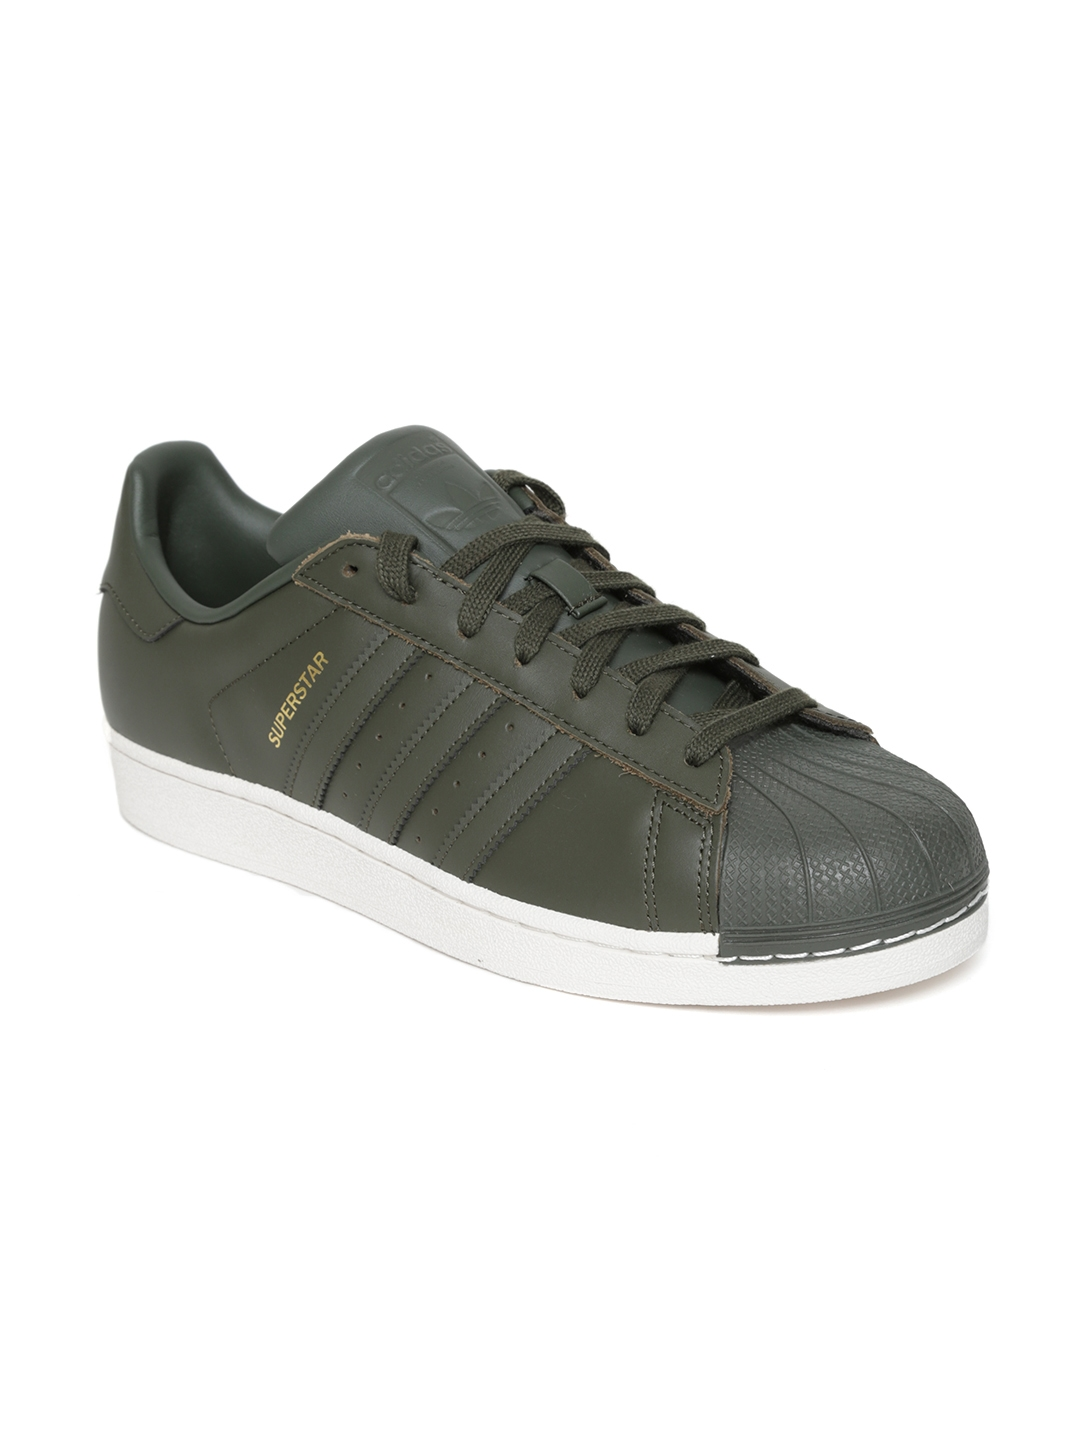 new product fc2c8 03c49 ADIDAS Originals Men Olive Green Superstar Leather Sneakers